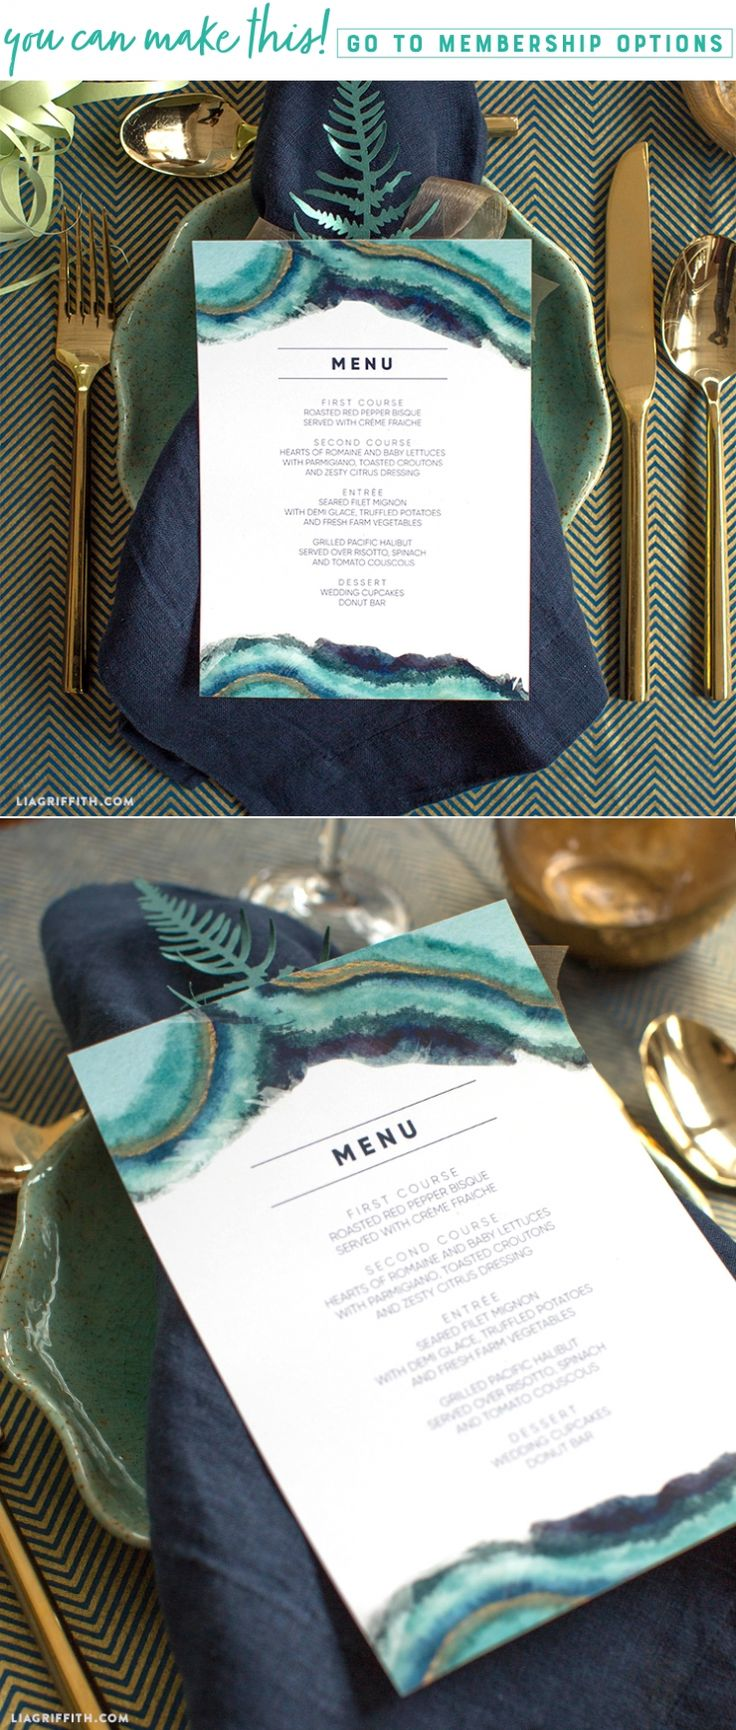 Download and Print Watercolor Wedding Menus - Lia Griffith - www.liagriffith.com #diywedding #paper #paperart #diyinspiration #diytable #madewithlia